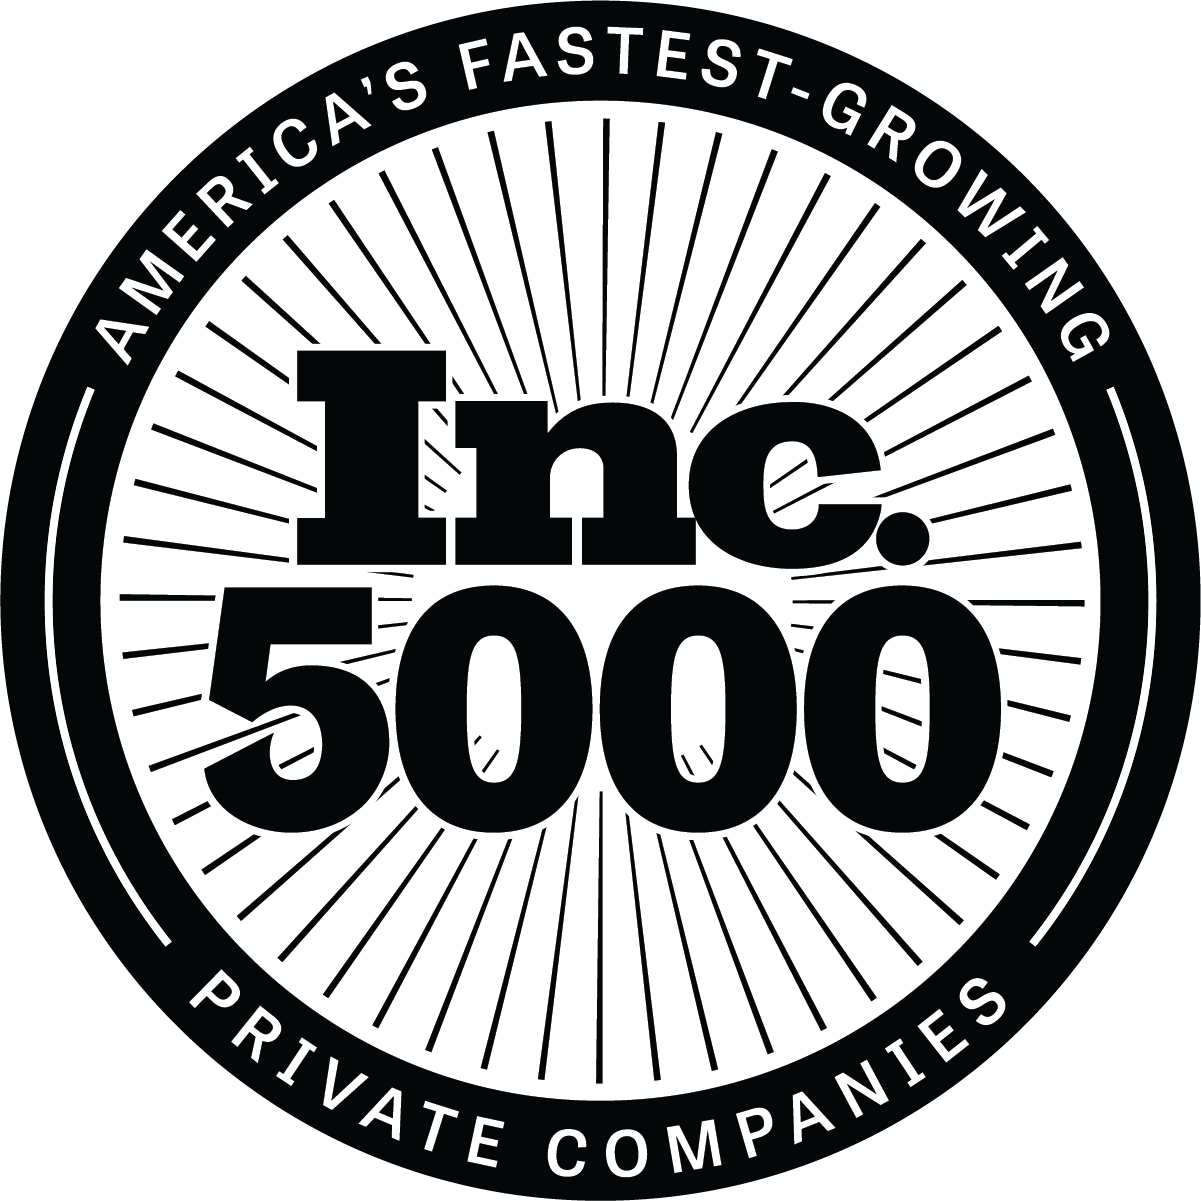 Fastest Growing Companies - 2020